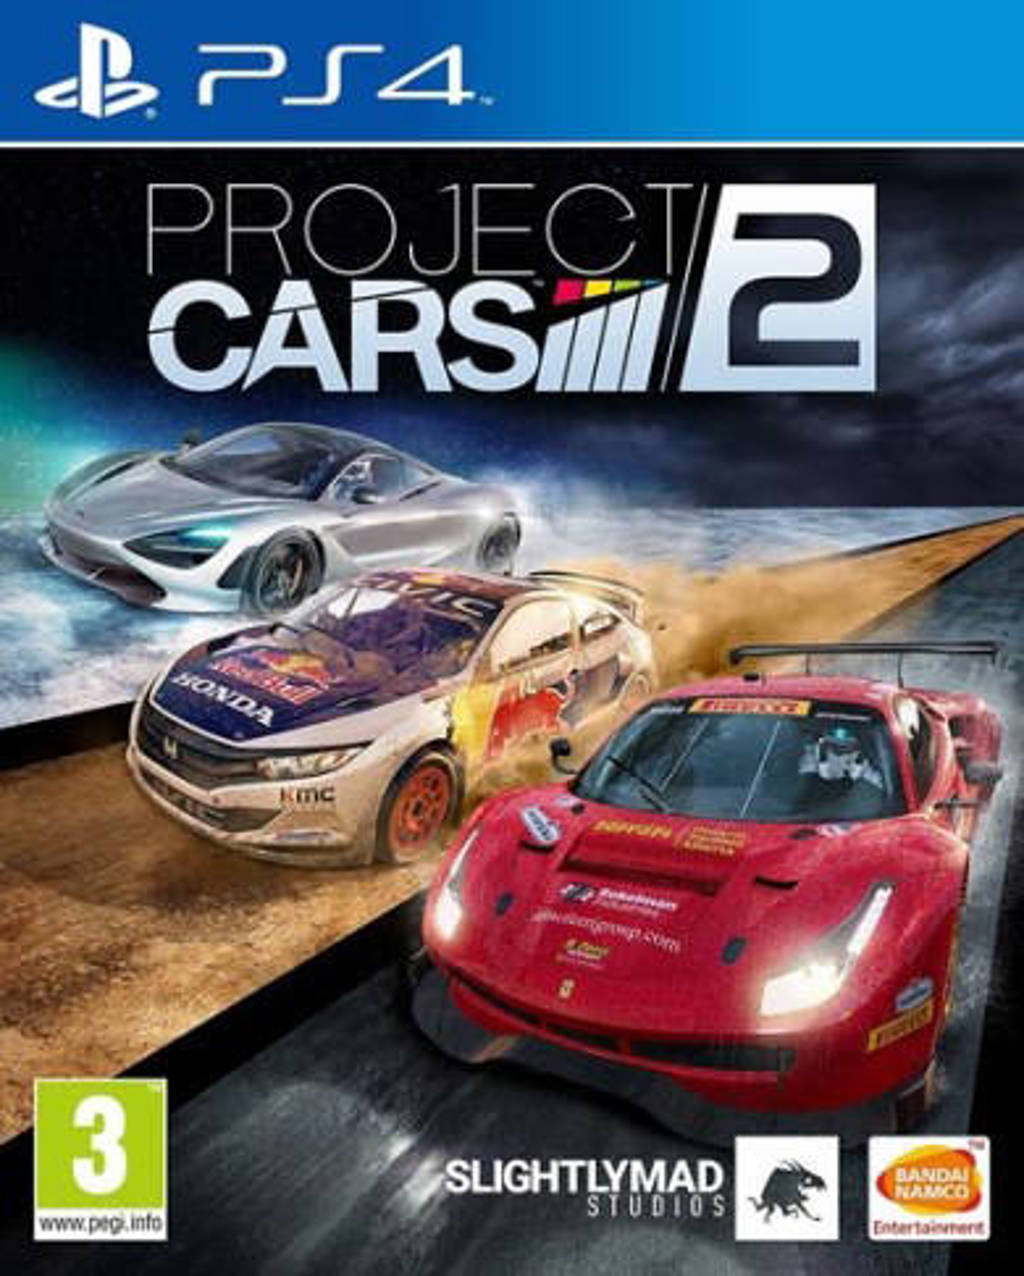 Project cars 2 (PlayStation 4)